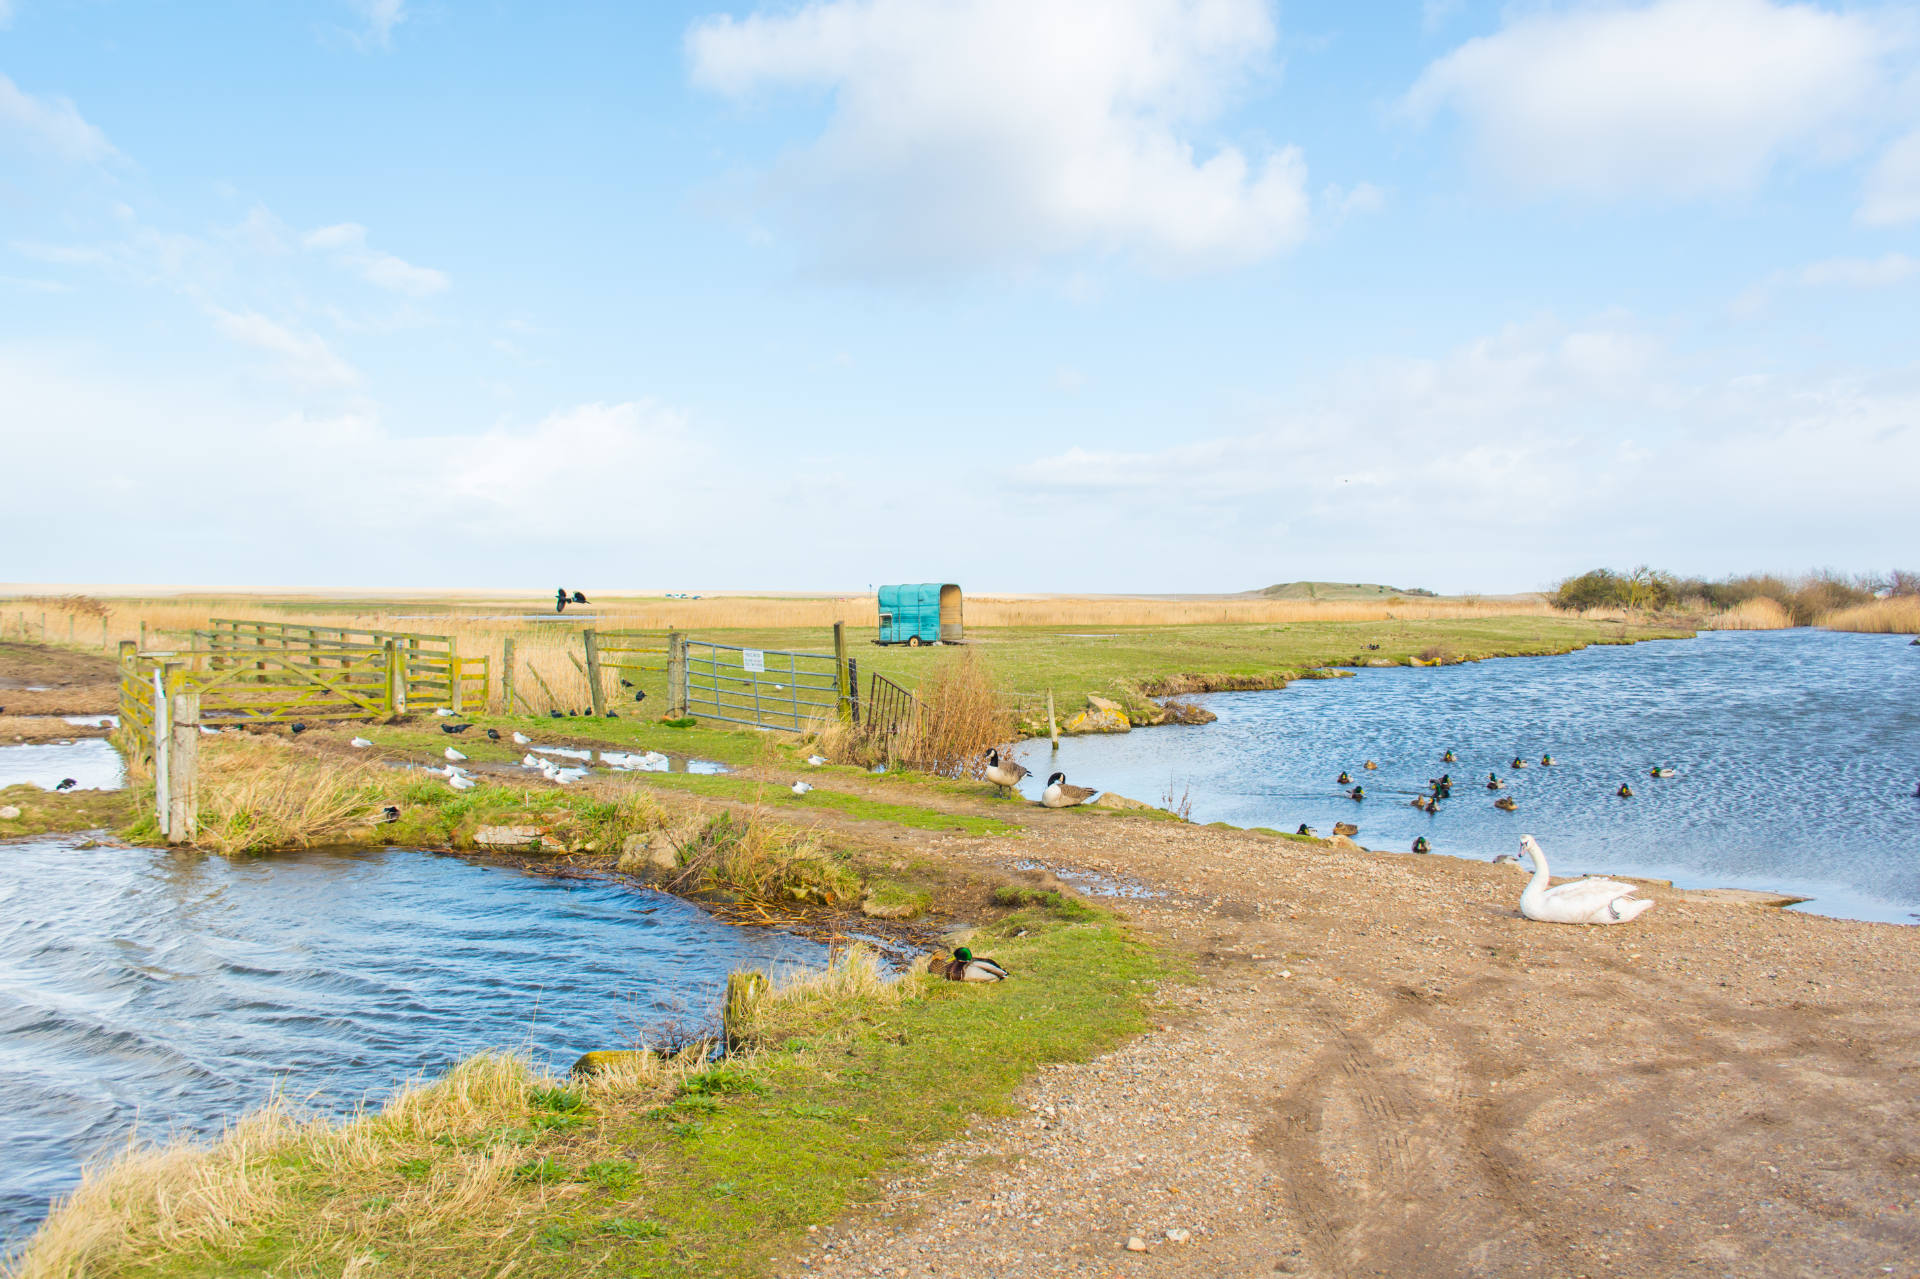 The salthouse marshes showing an array of birds and wildlife enjoying a sunny day.